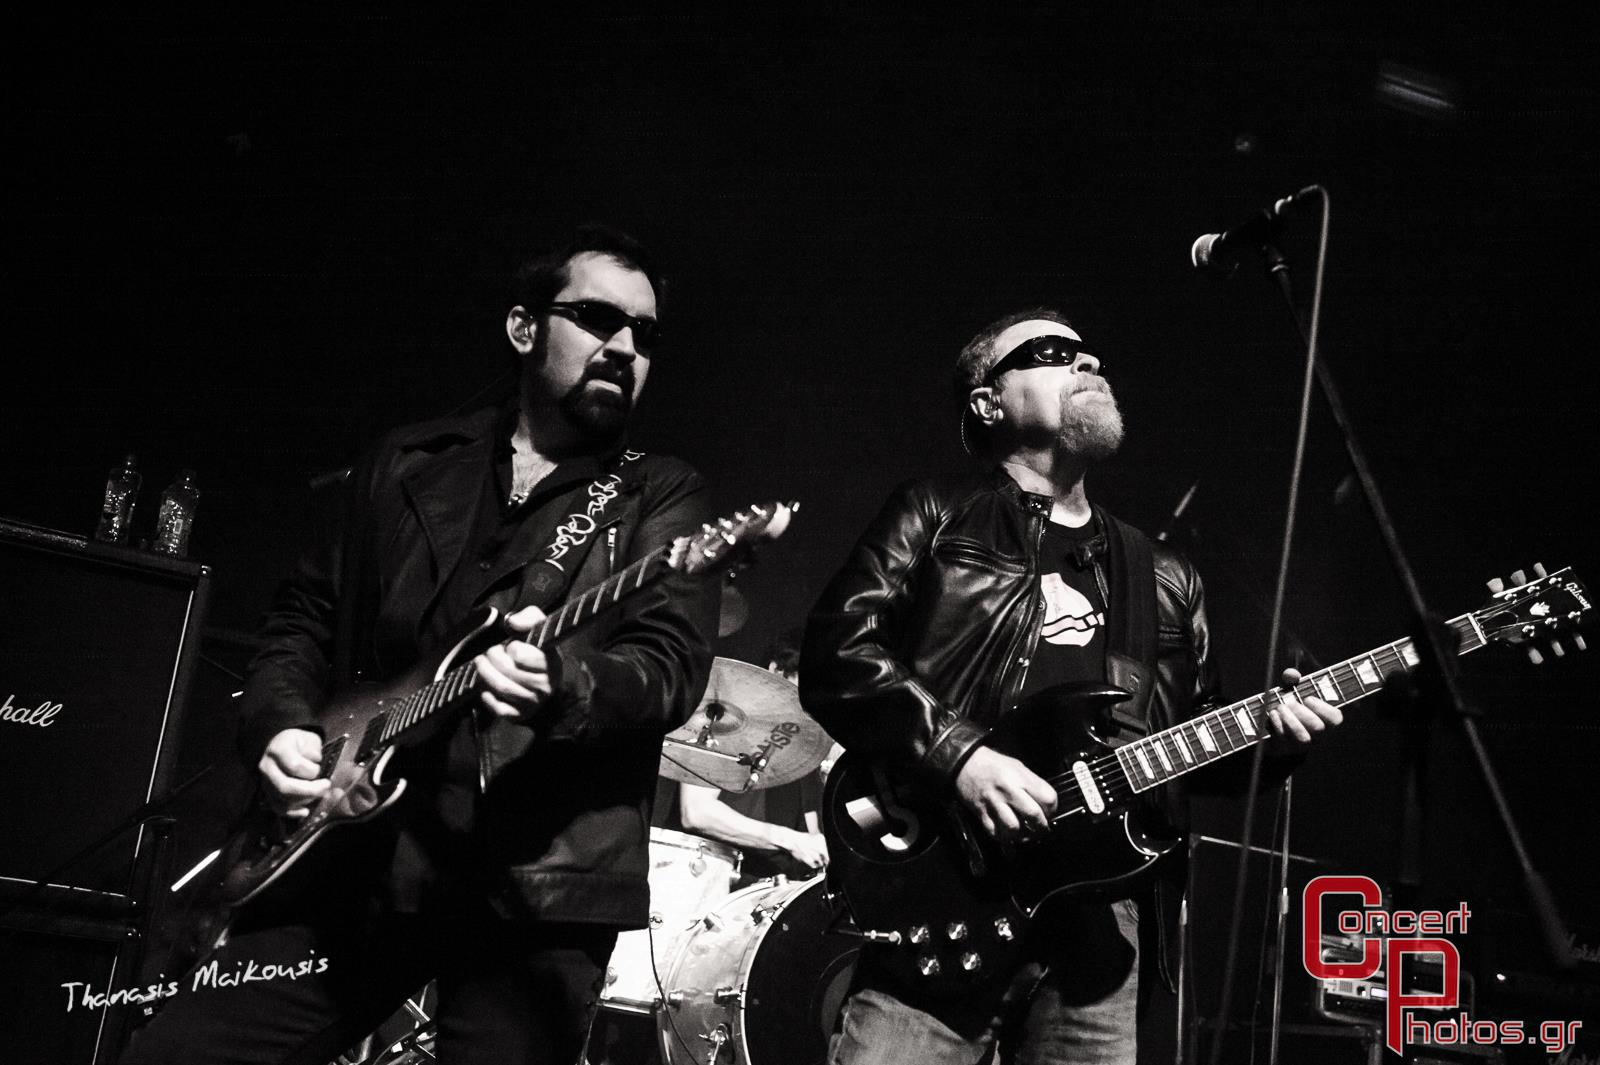 Blue Oyster Cult & Big Nose Attack-Blue Oyster Cult - Big Nose Attack photographer:  - ConcertPhotos-3140